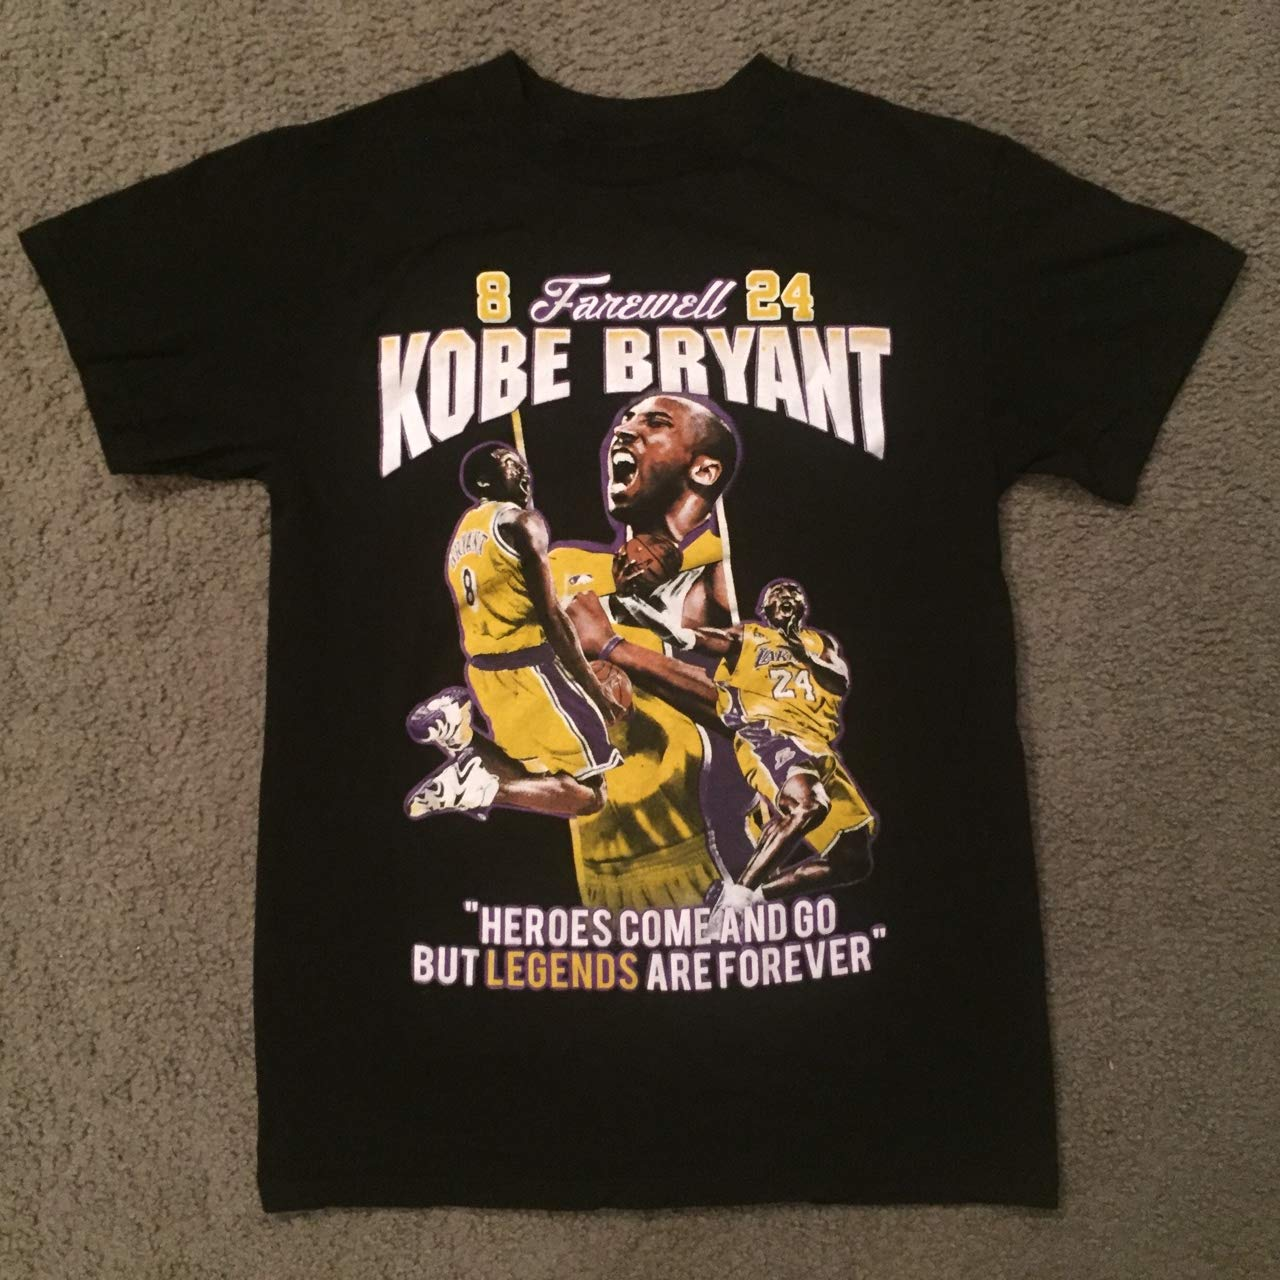 Farewell Kobe bryant Heroes Come And Go But Legends Are Forever Shirt Big Fans Customized Handmade T Shirt   Long Sleeve   Sweatshirt   Hoodie S 6xl